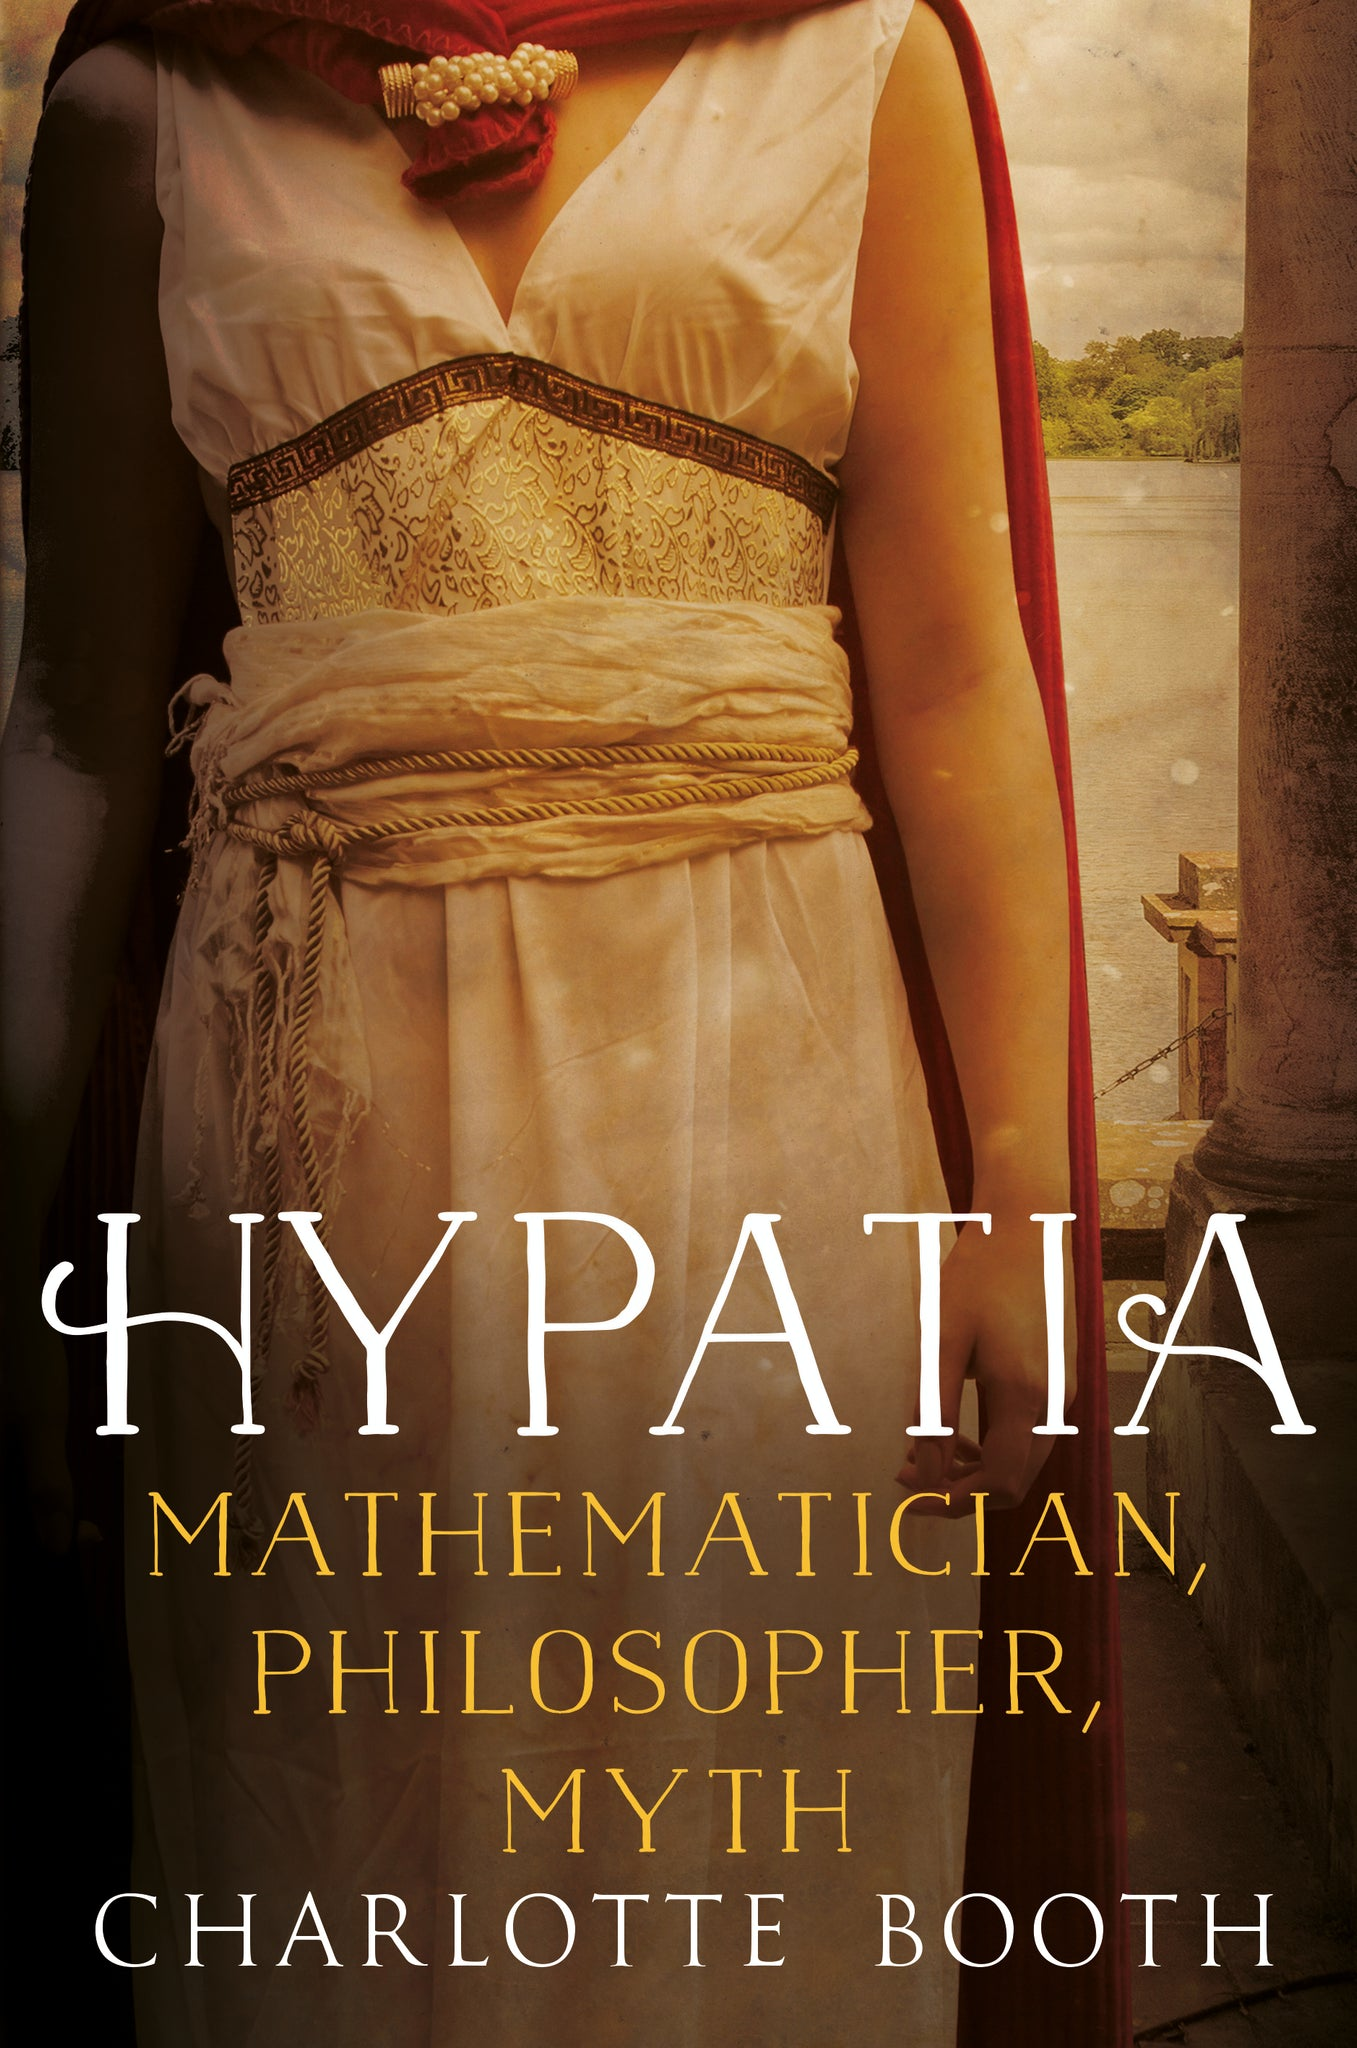 Hypatia: Mathematician, Philosopher, Myth